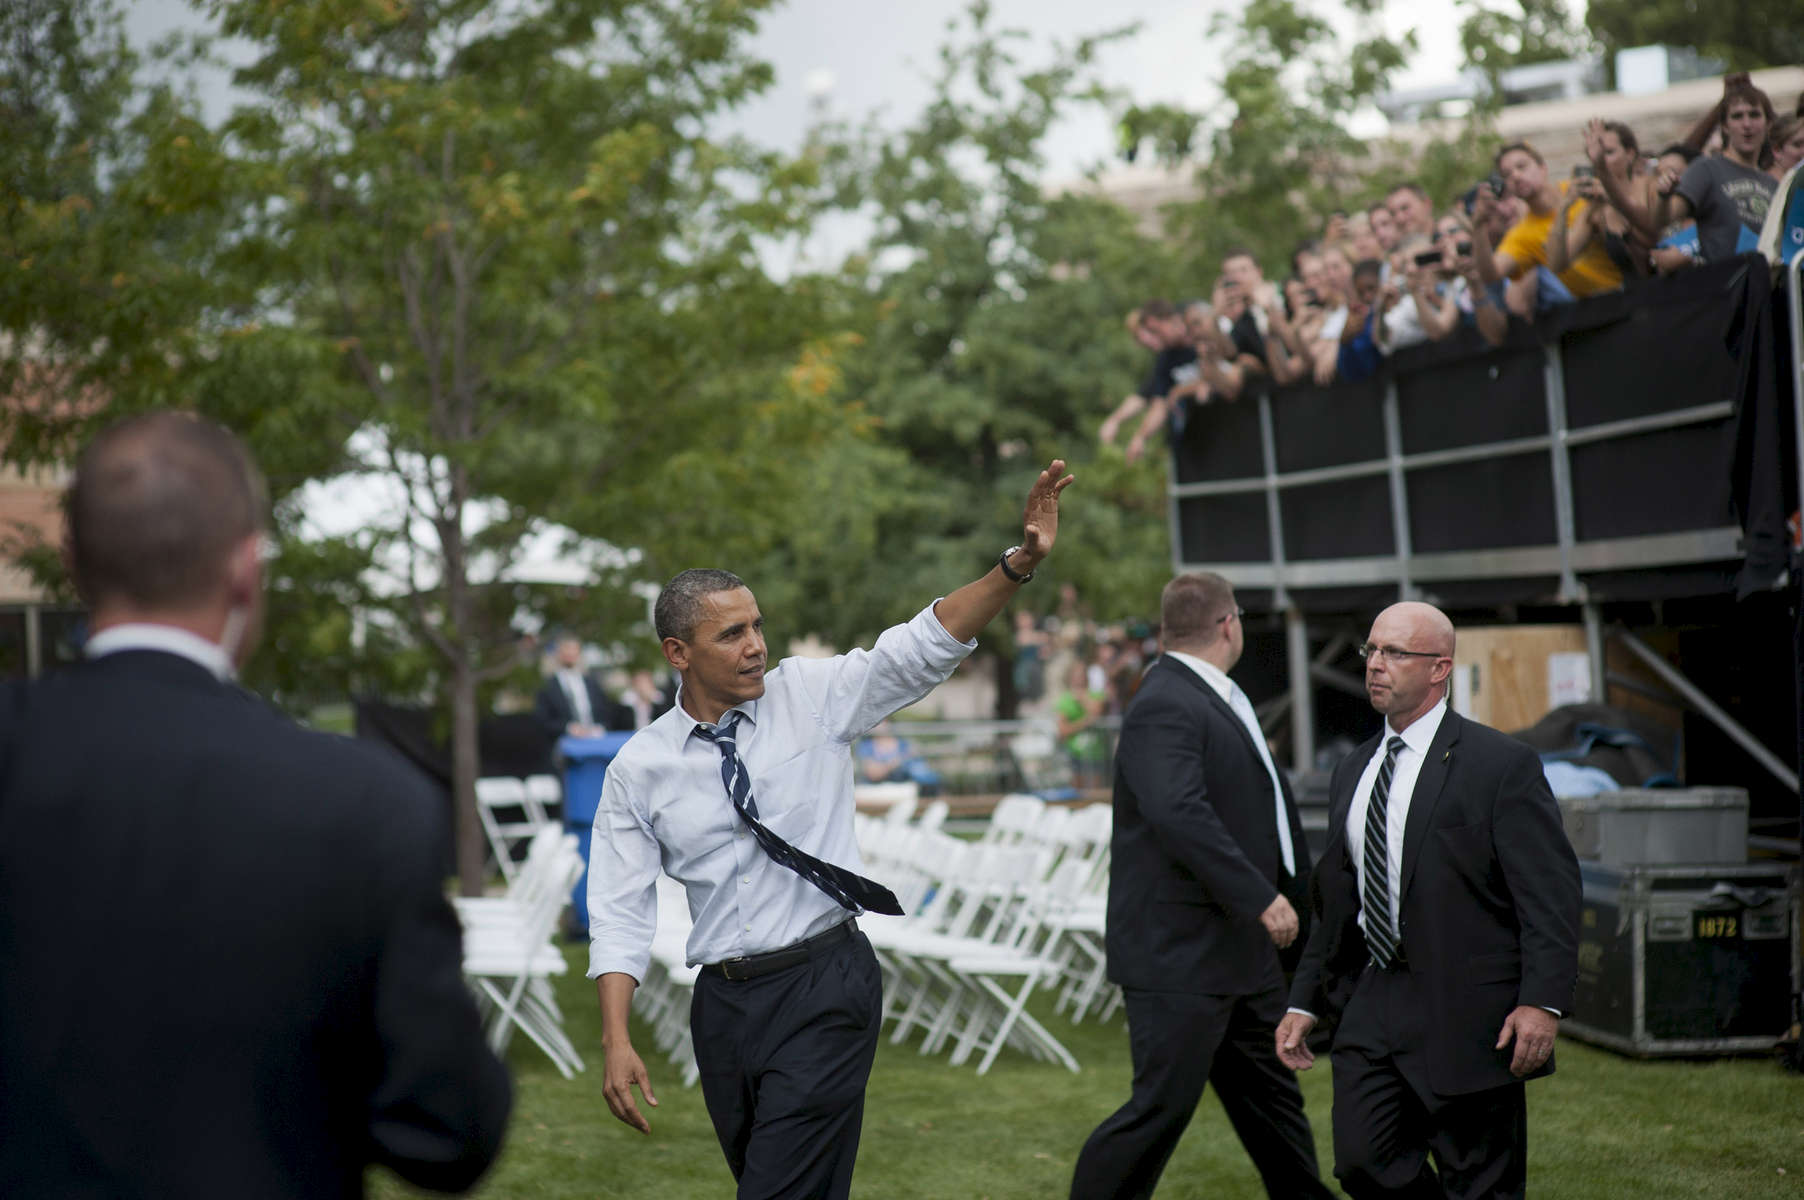 August 28, 2012- Fort Collins, CO:  President Barack Obama waves to the crowd after a campaign event in Fort Collins, CO.  (Scout Tufankjian for Obama for America/Polaris)